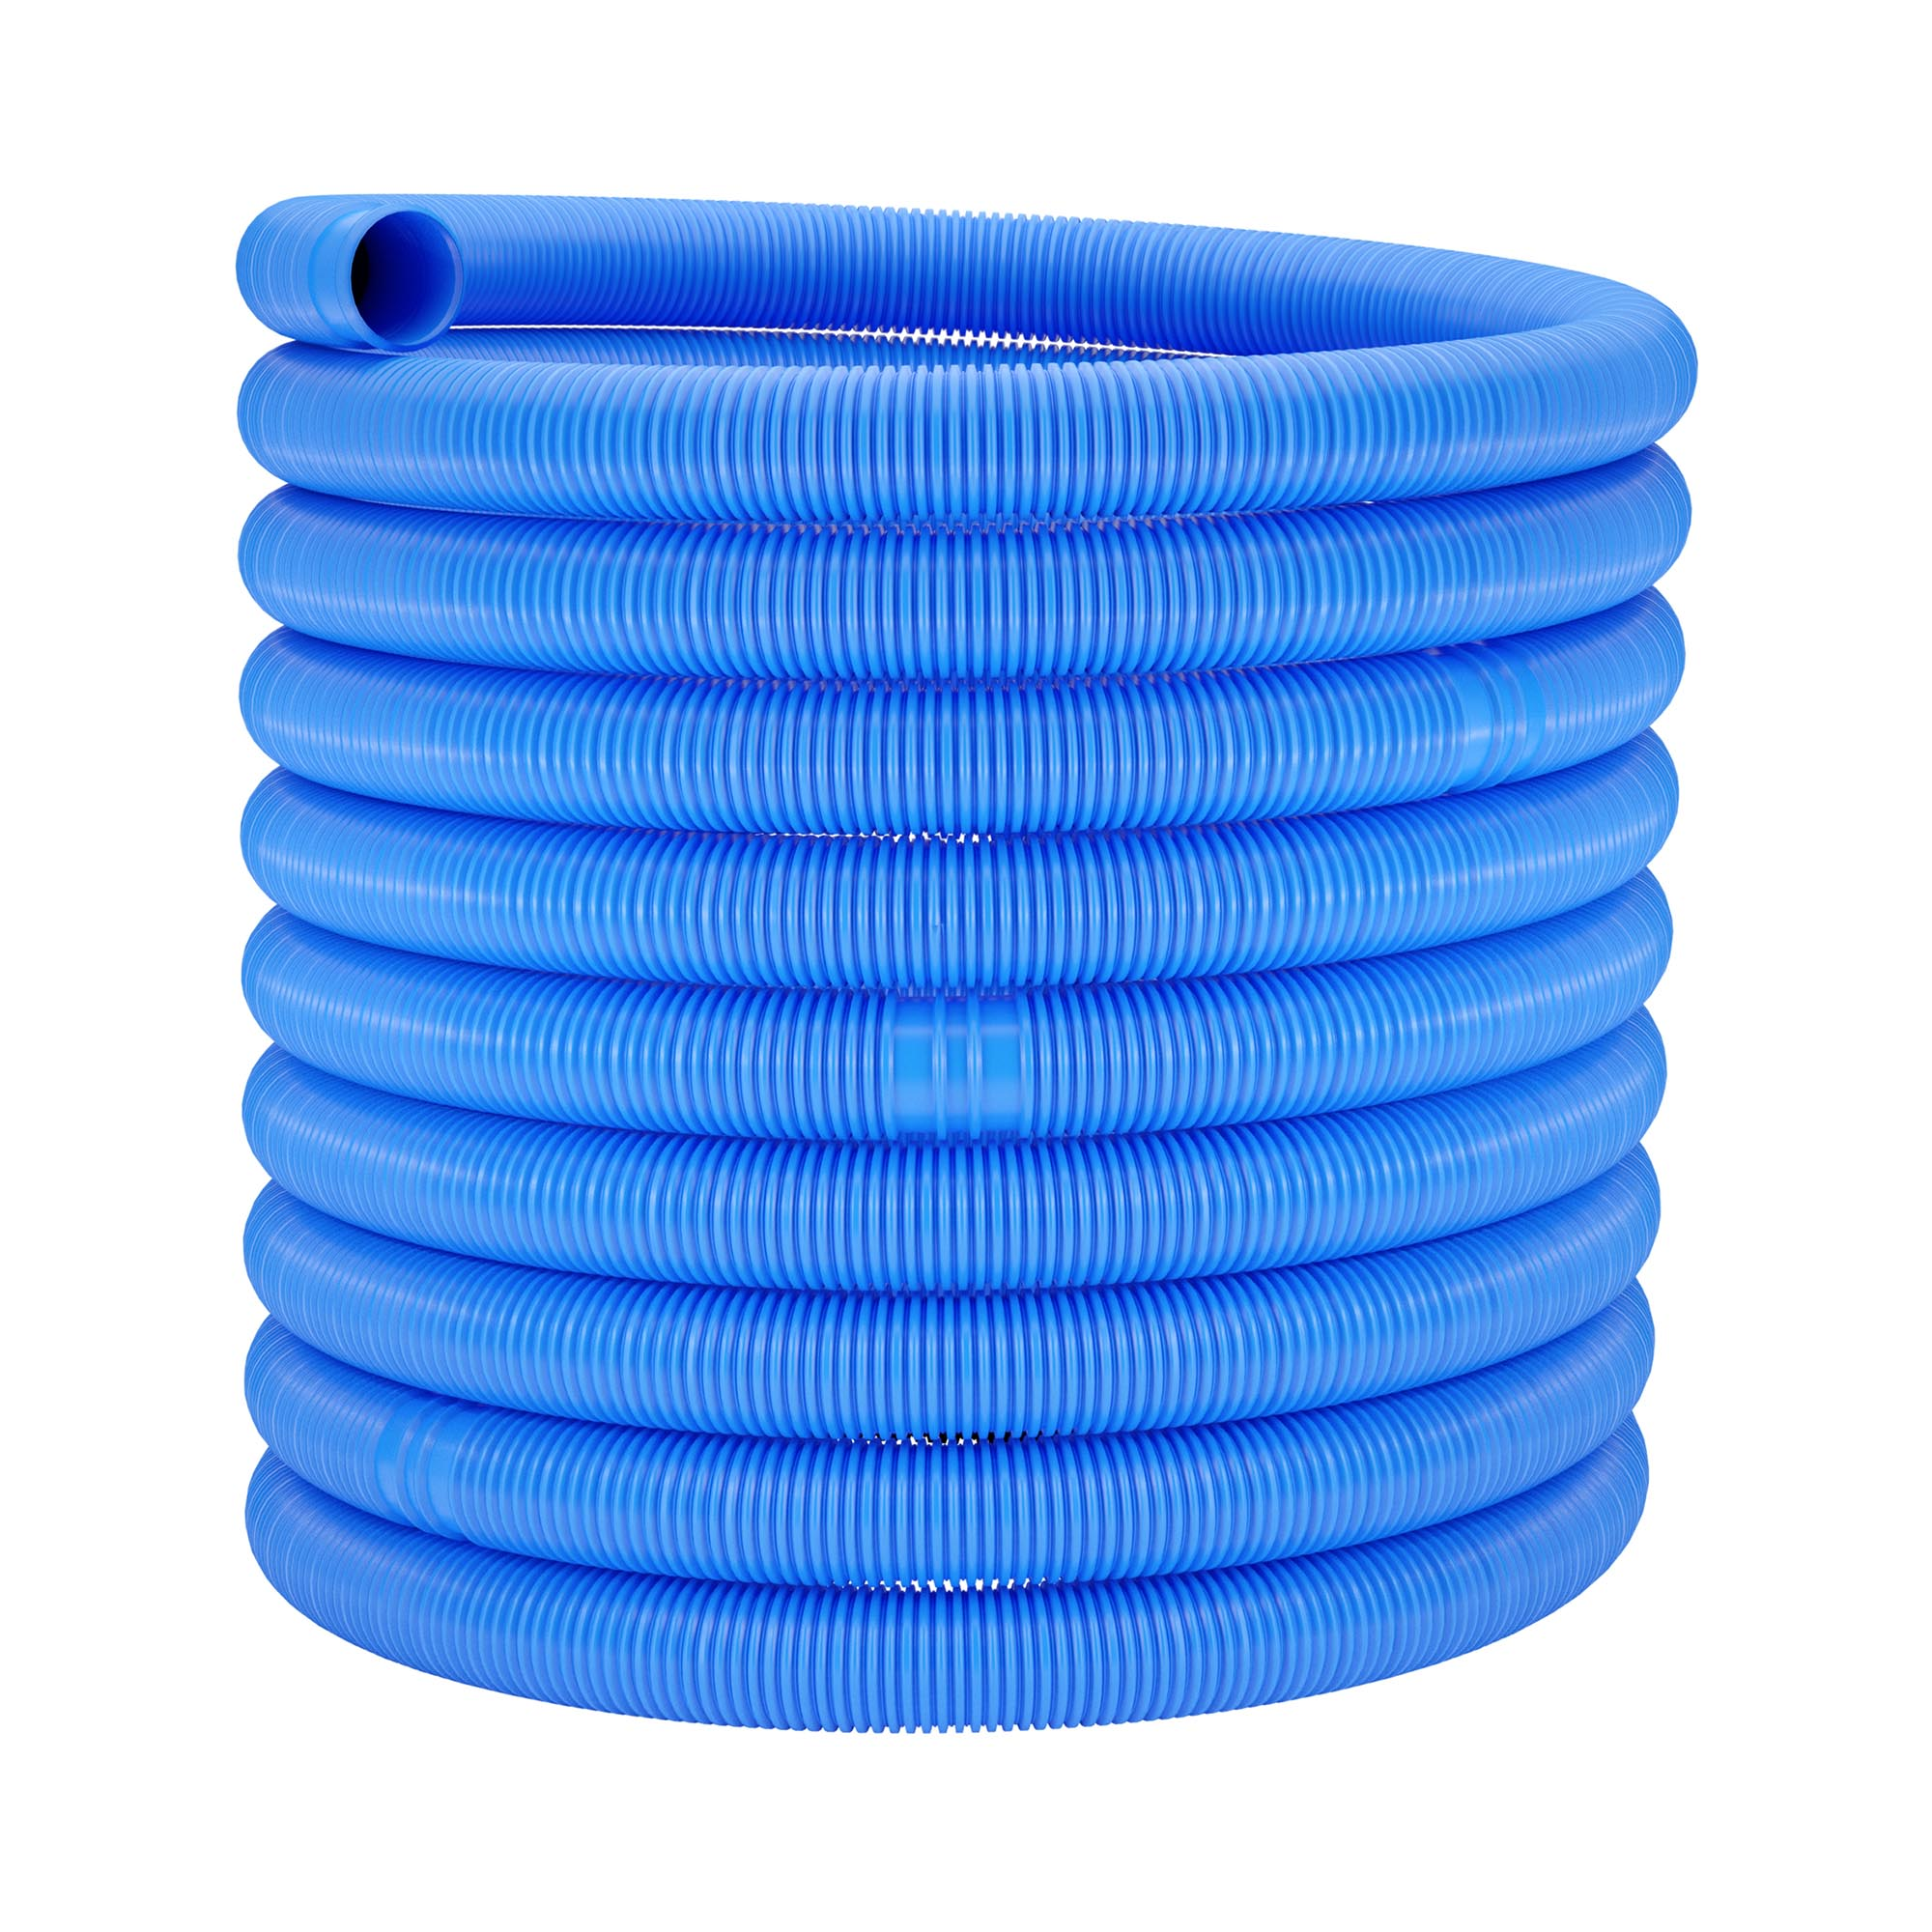 Uniprodo Poolschlauch - Ø 32 mm - 15 m UNI_POOL_HOSE_32/15